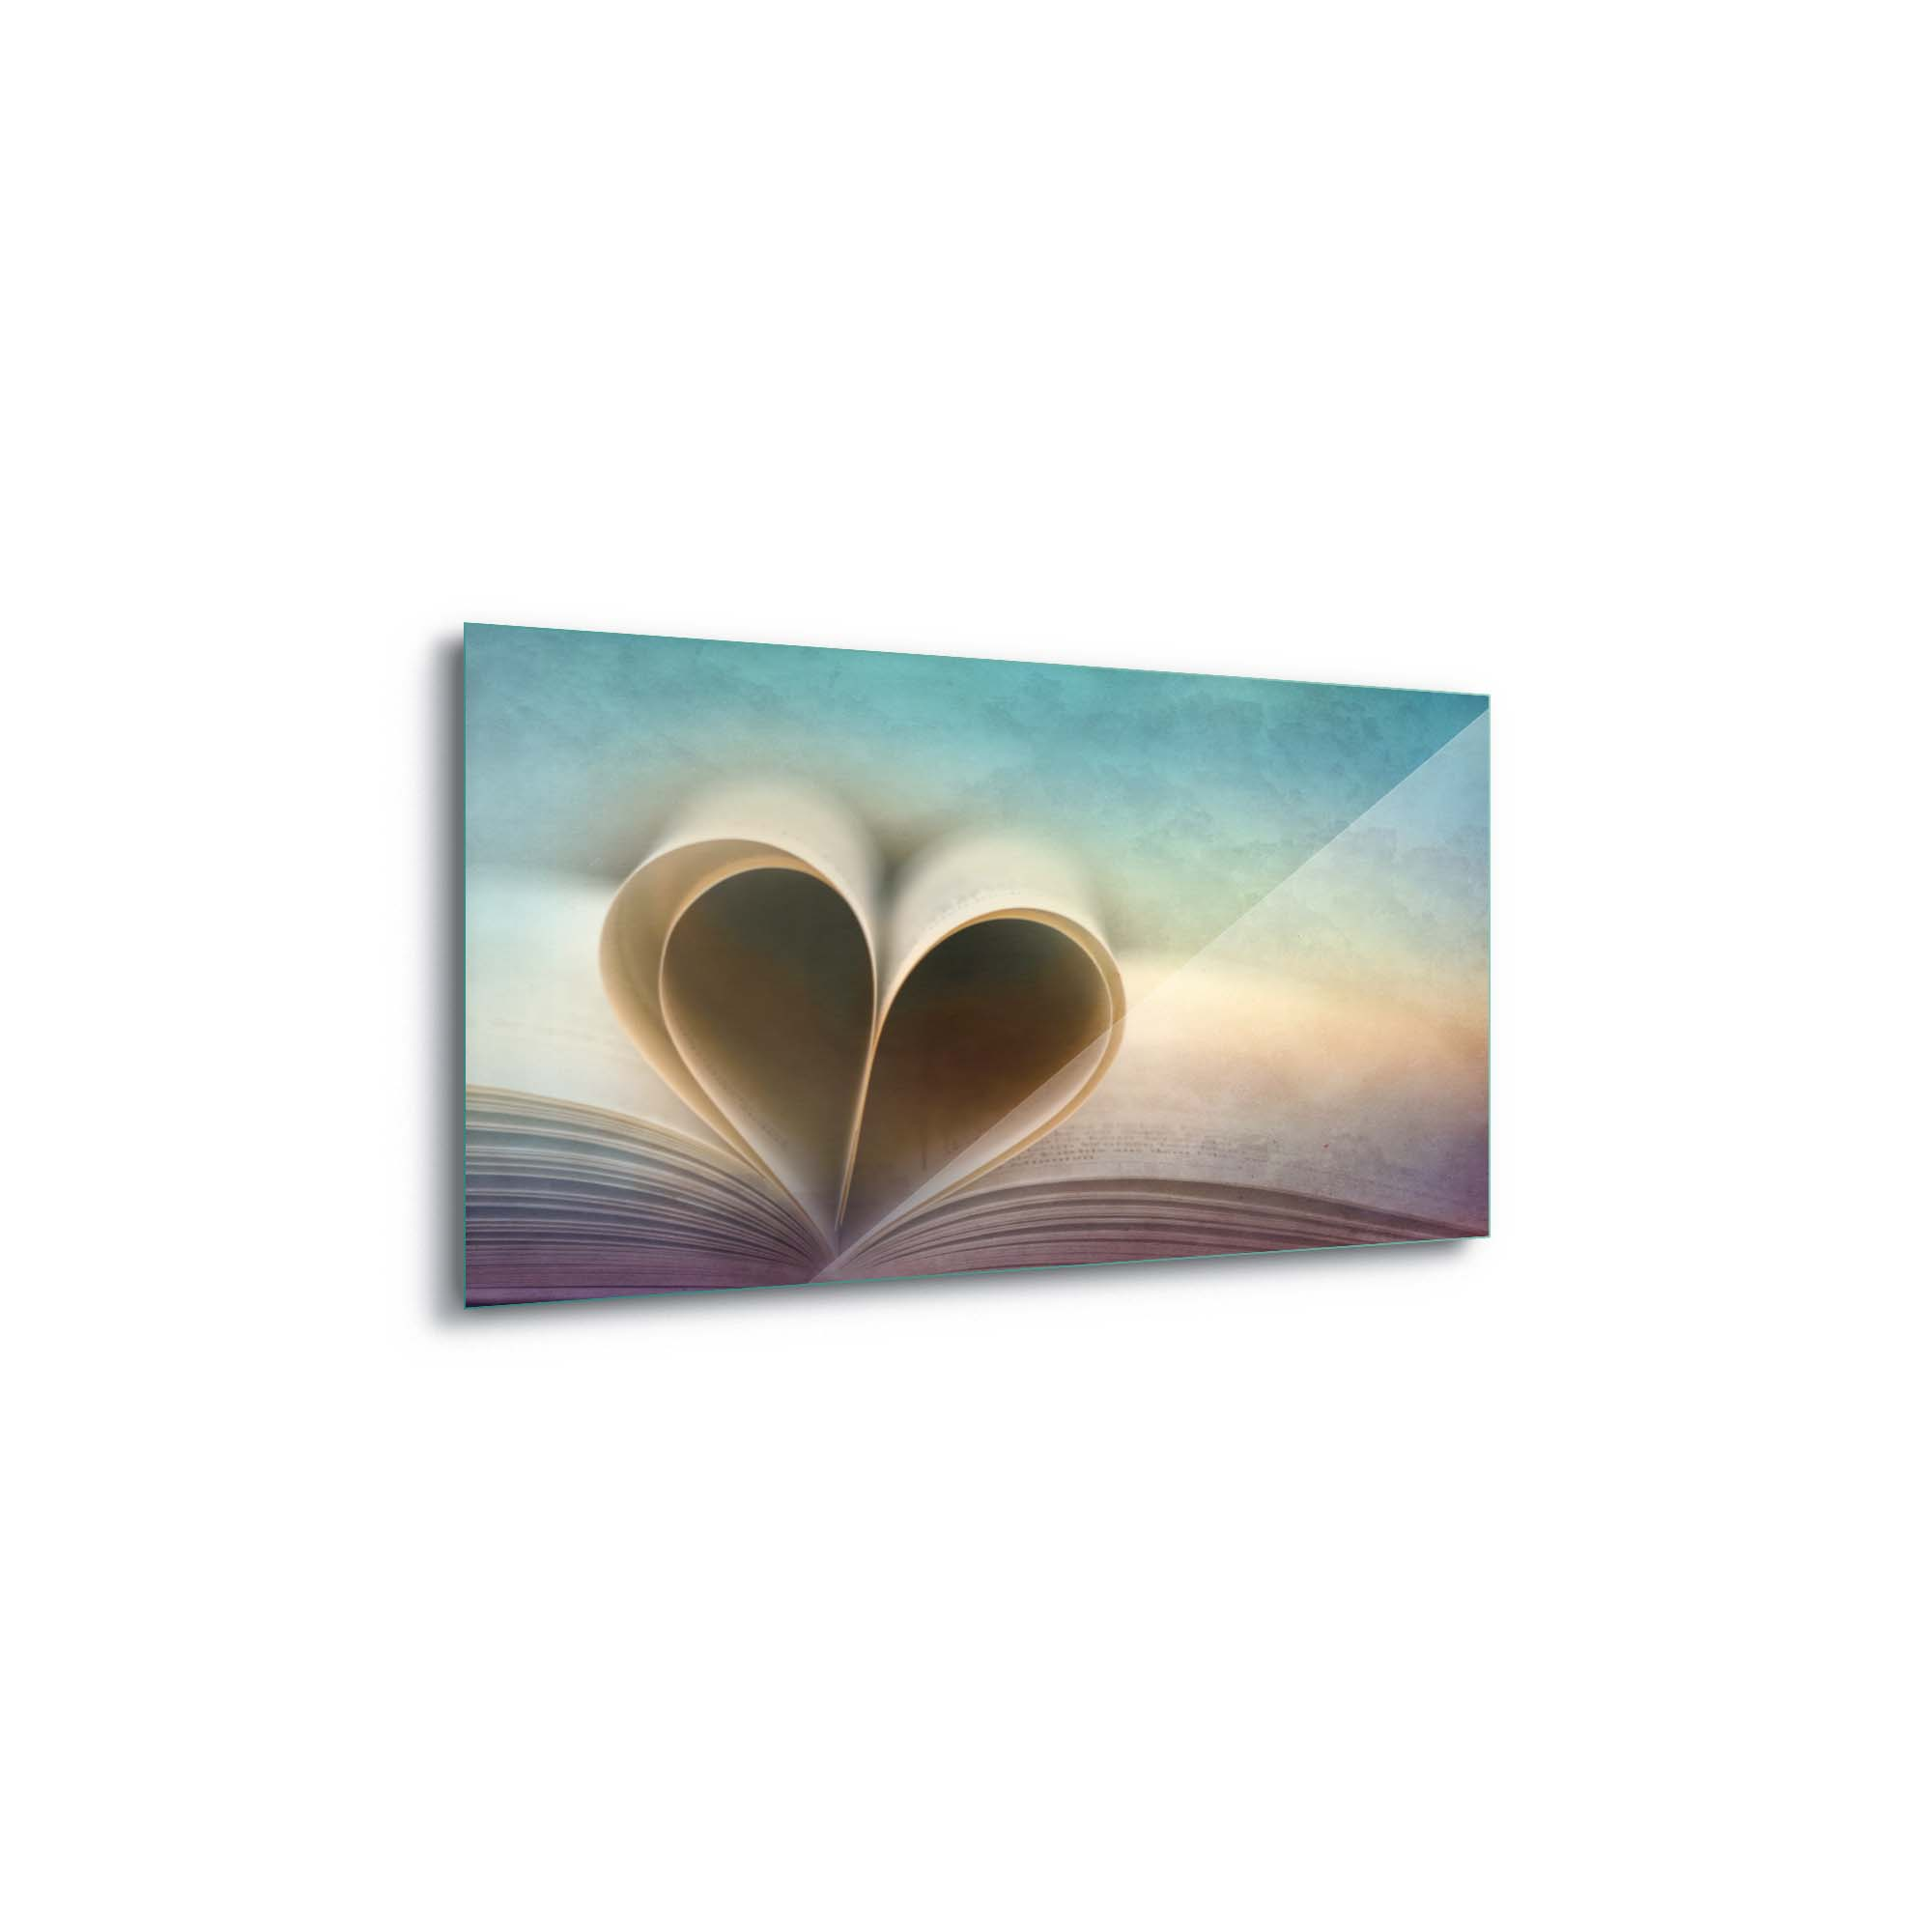 Glass printed Book with a Heart